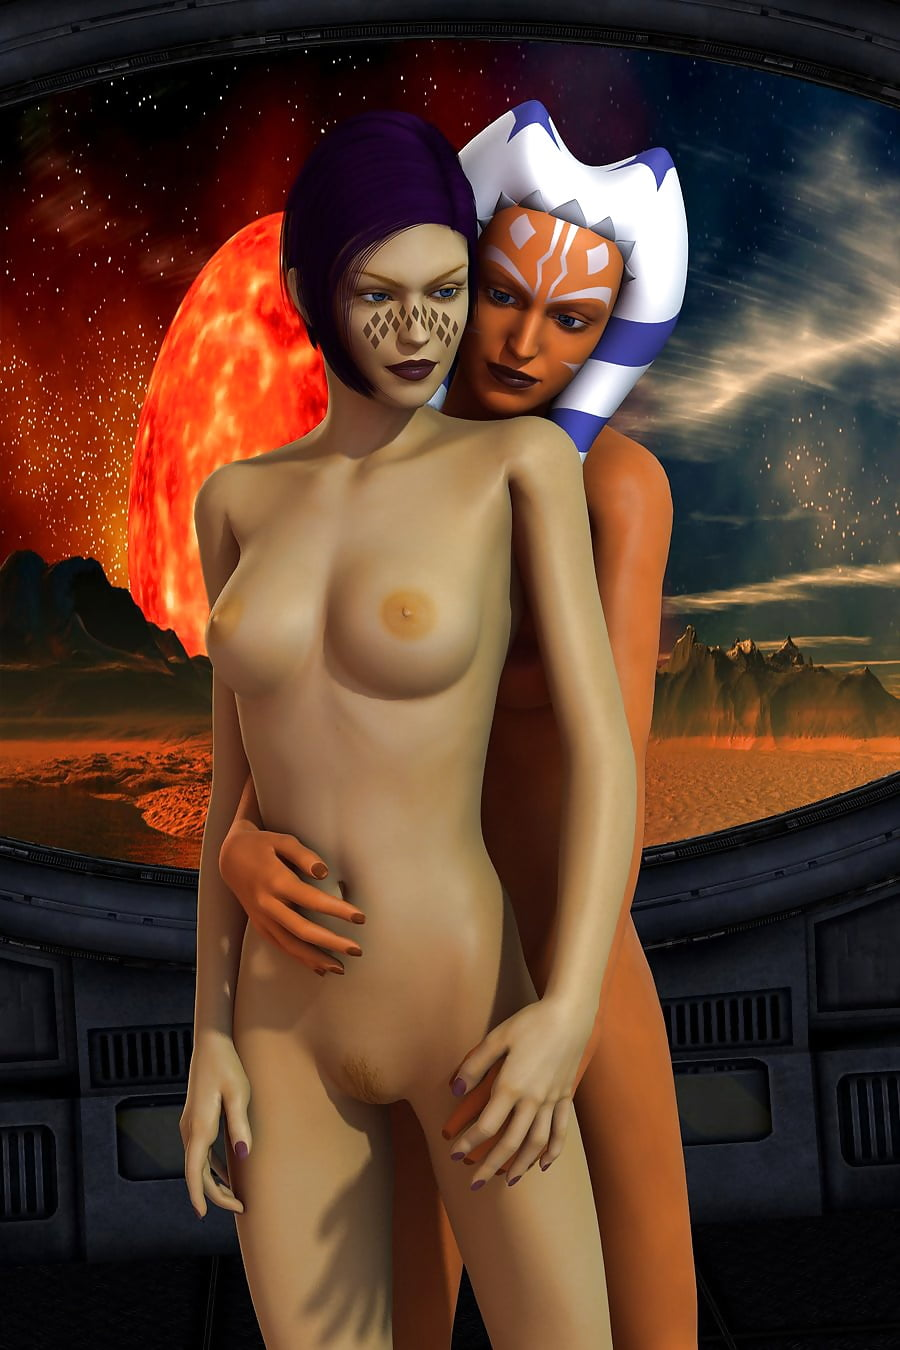 Barris Offer Porno erotic starwars - ahsoka tano & barriss offee - gf lesbi